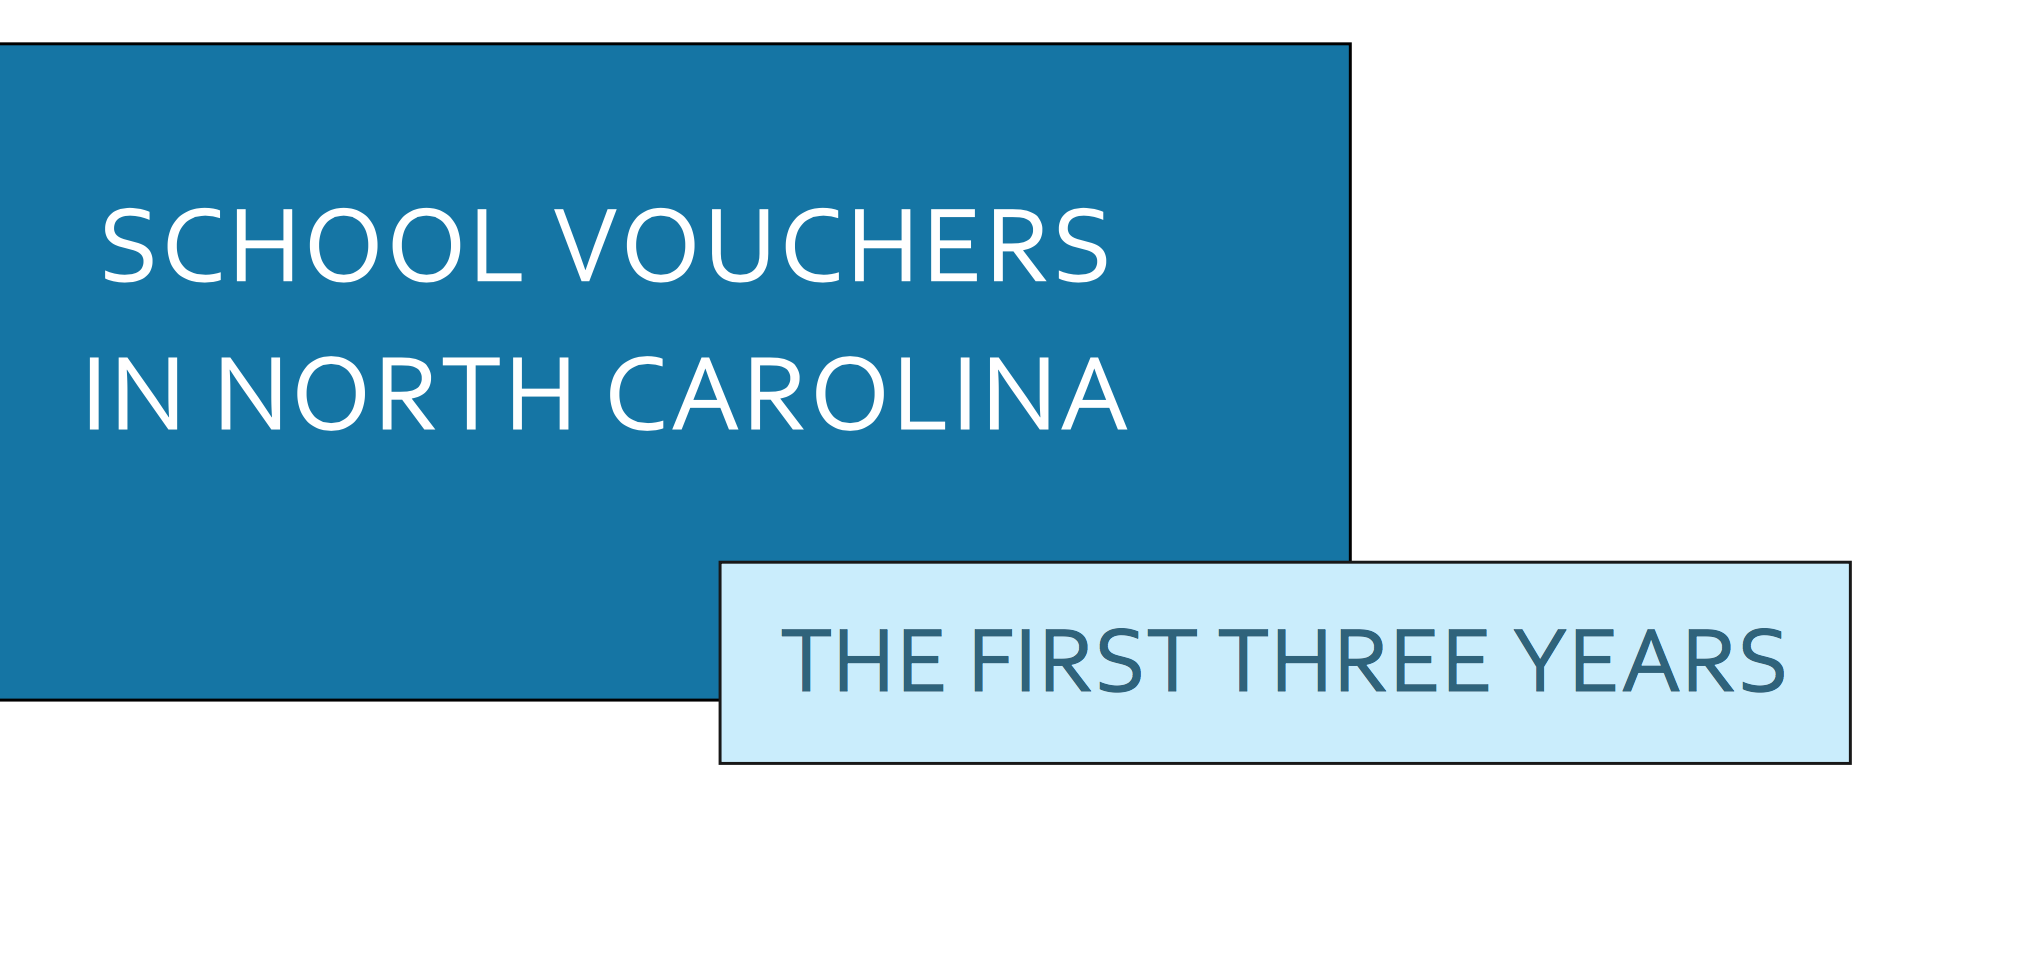 NC Voucher Program: Accountability Among Worst in US